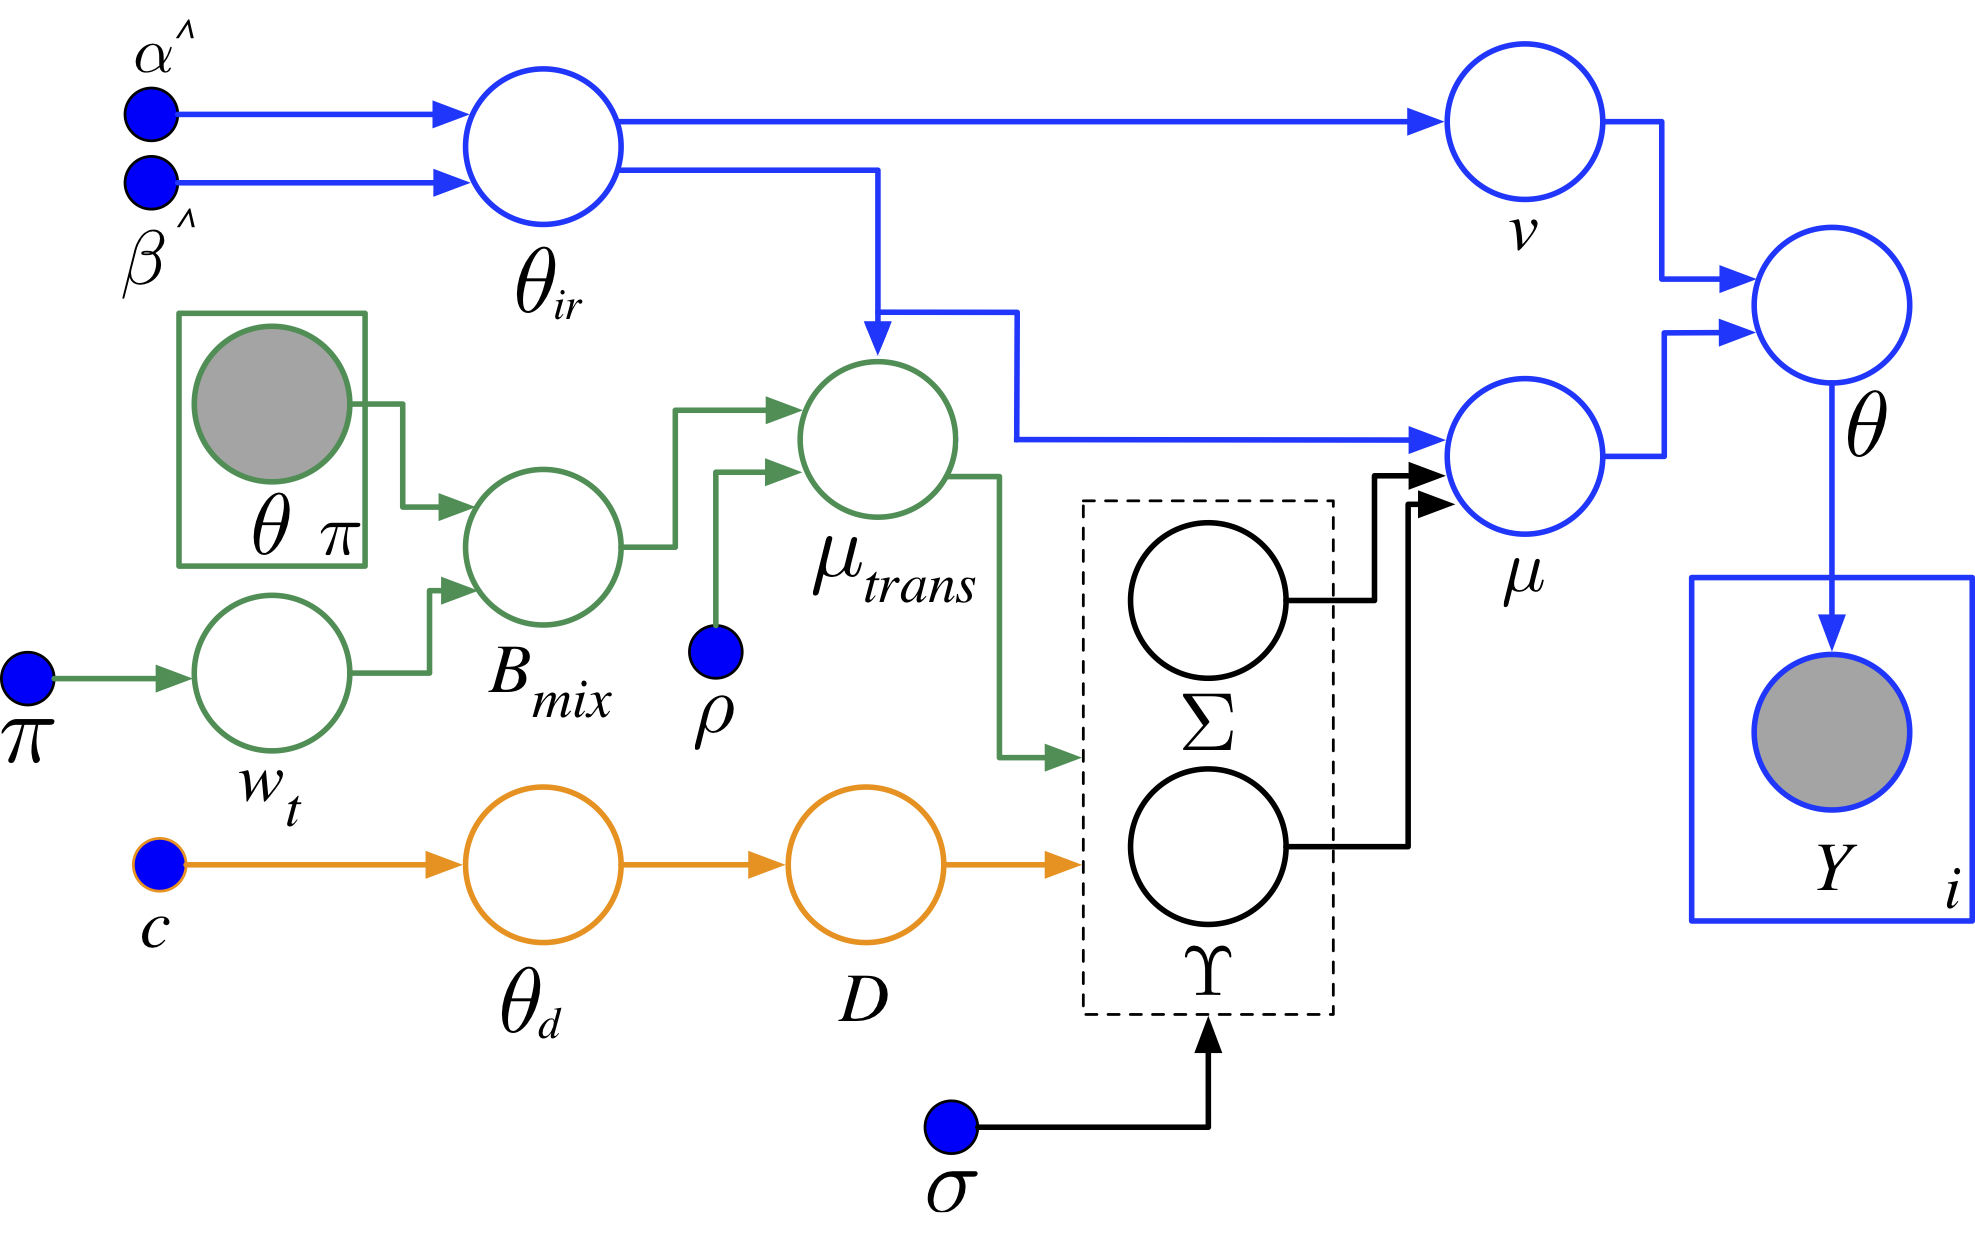 Figure 1: Plate Diagram of Comet's Hierarchical Bayesian Network